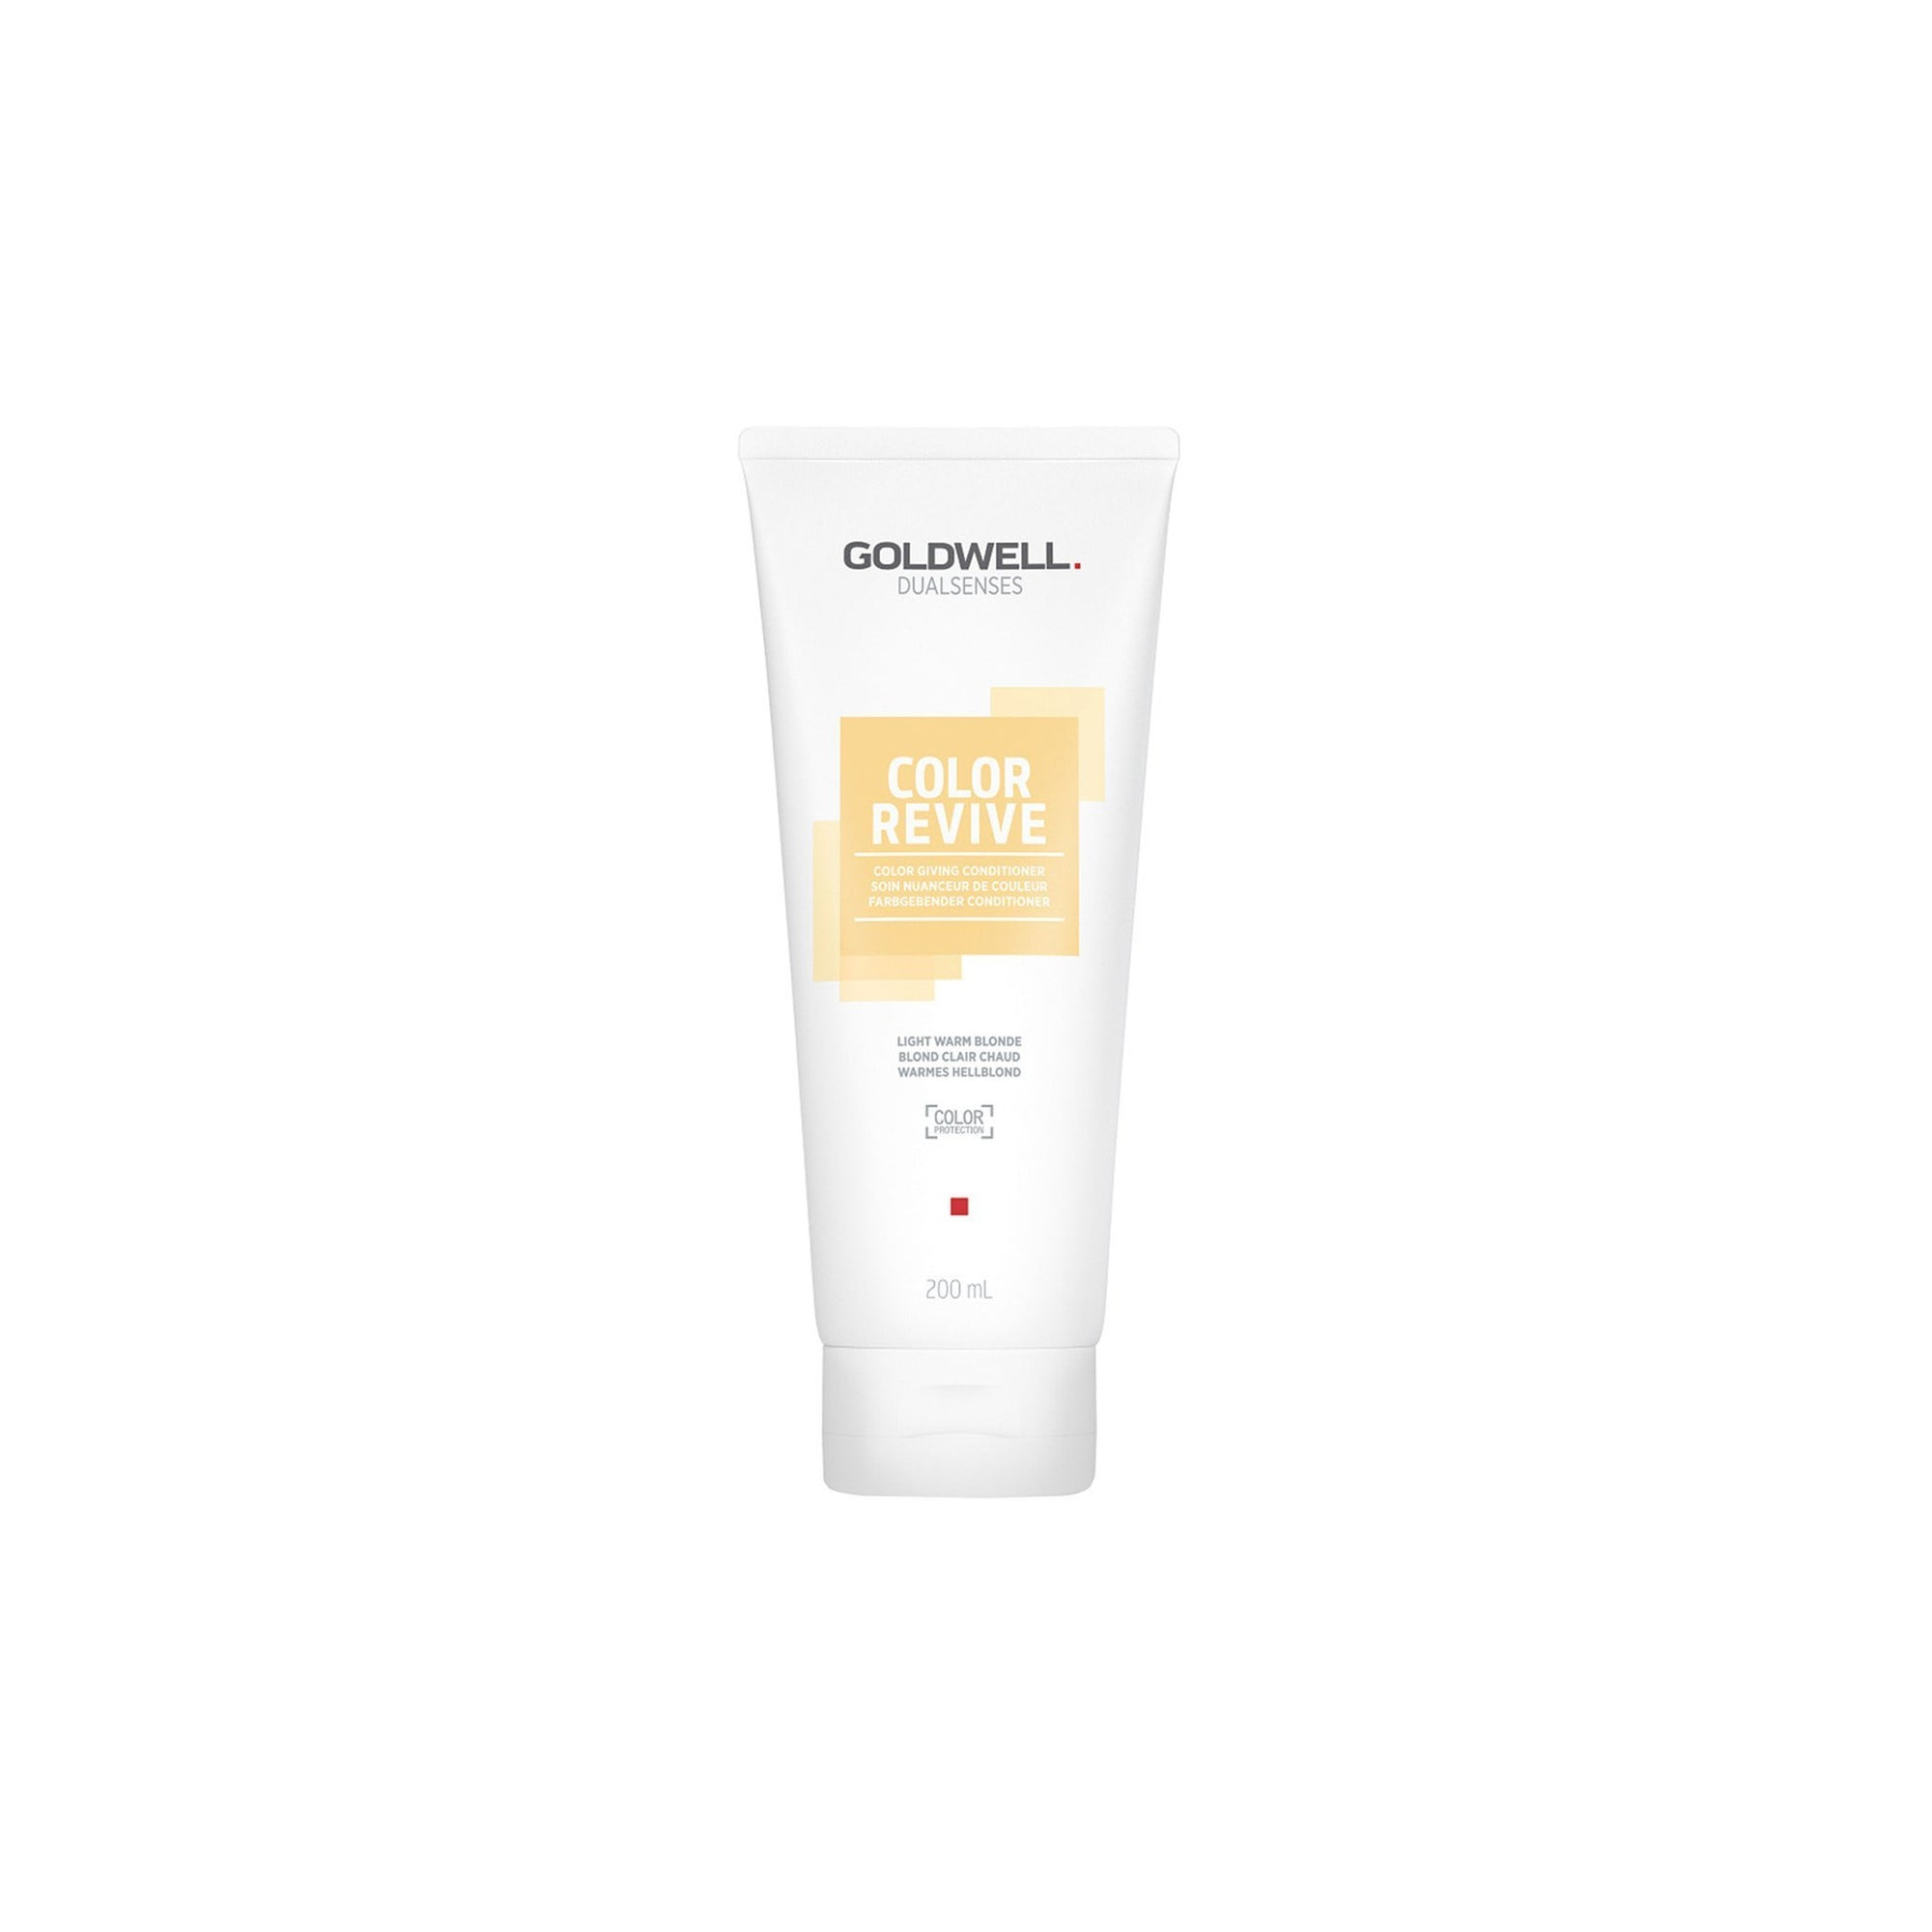 Goldwell Dualsenses Color Revive Color Giving Conditioner 200 ml - Light Warm Blonde